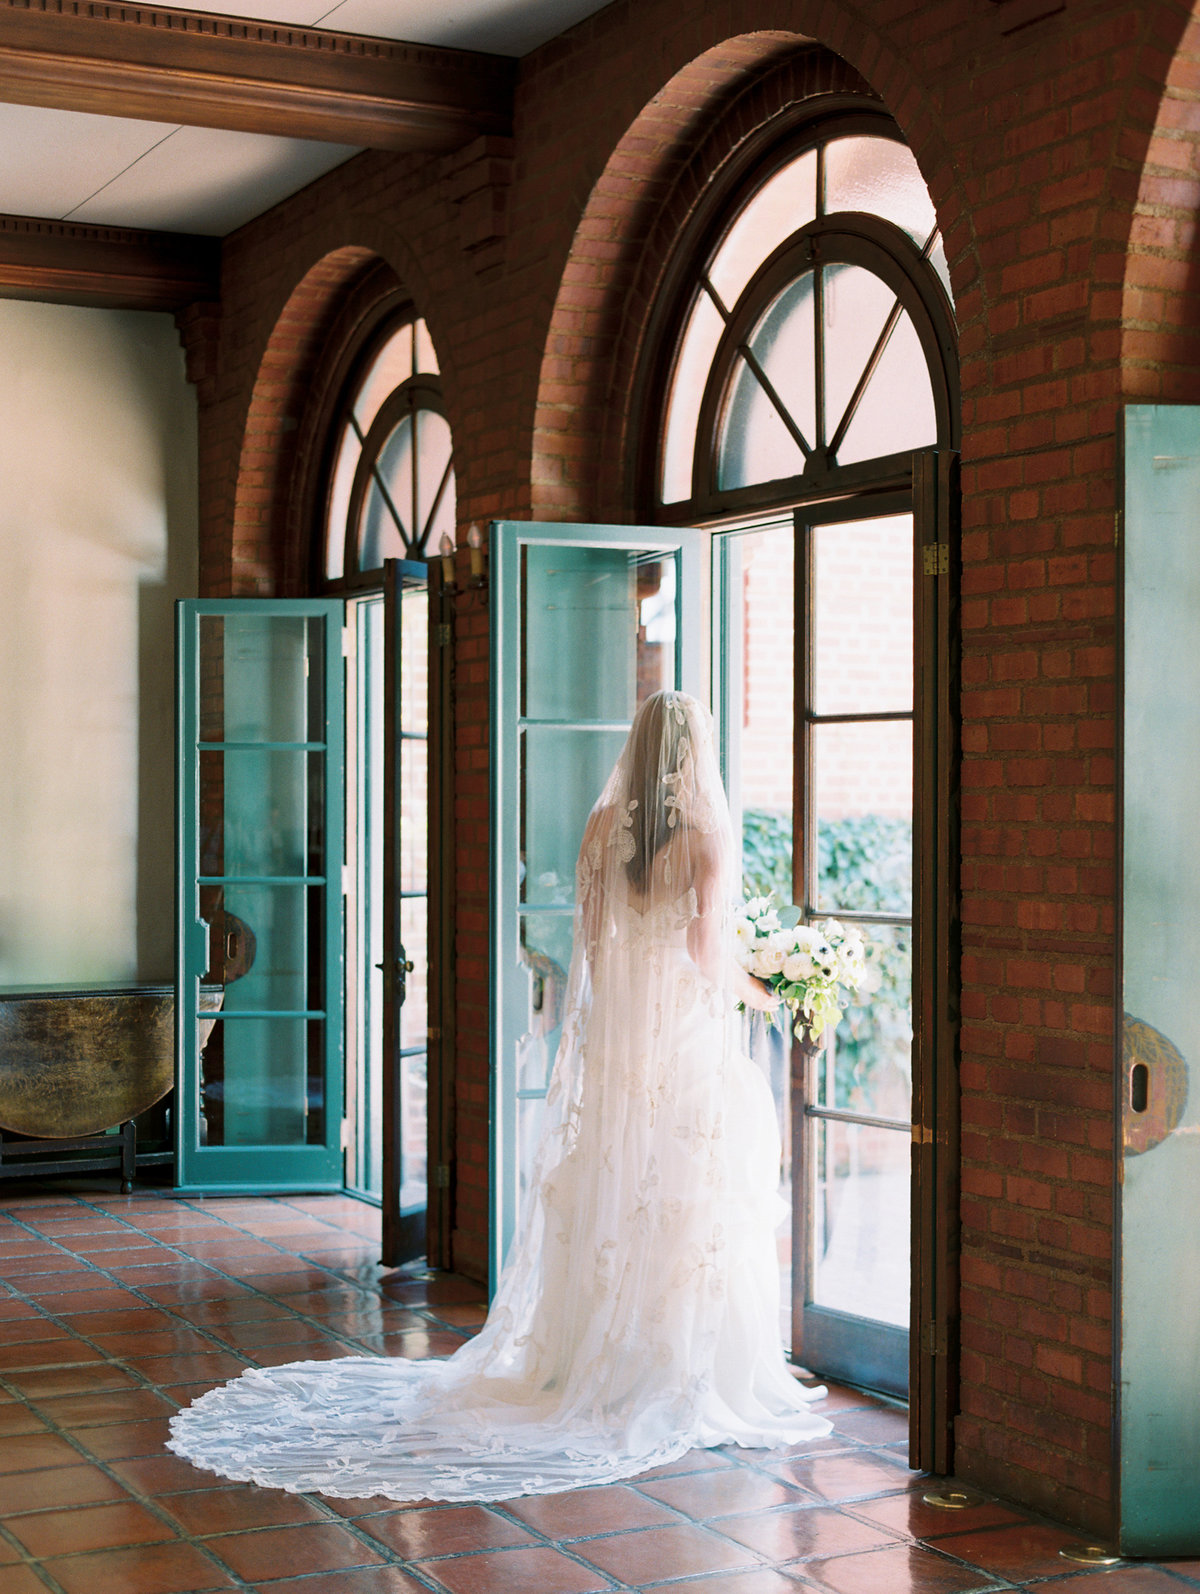 film wedding photo of a bride standing in a doorway